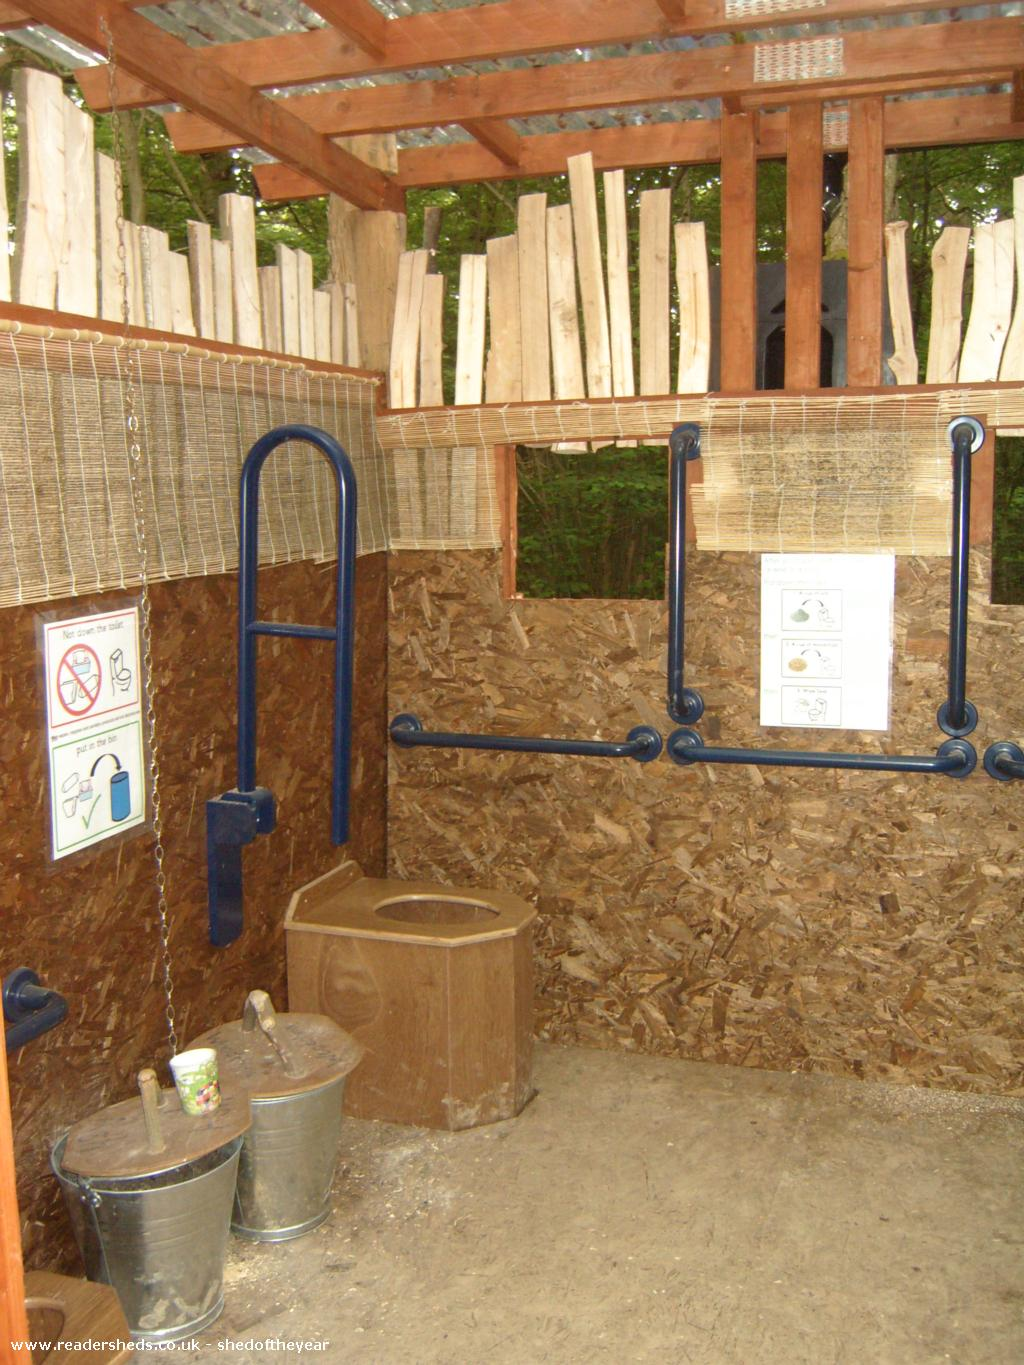 Fully accessible composting woodland toilet - David Spreadbury-Troy - Ingfiled Manor School Woods